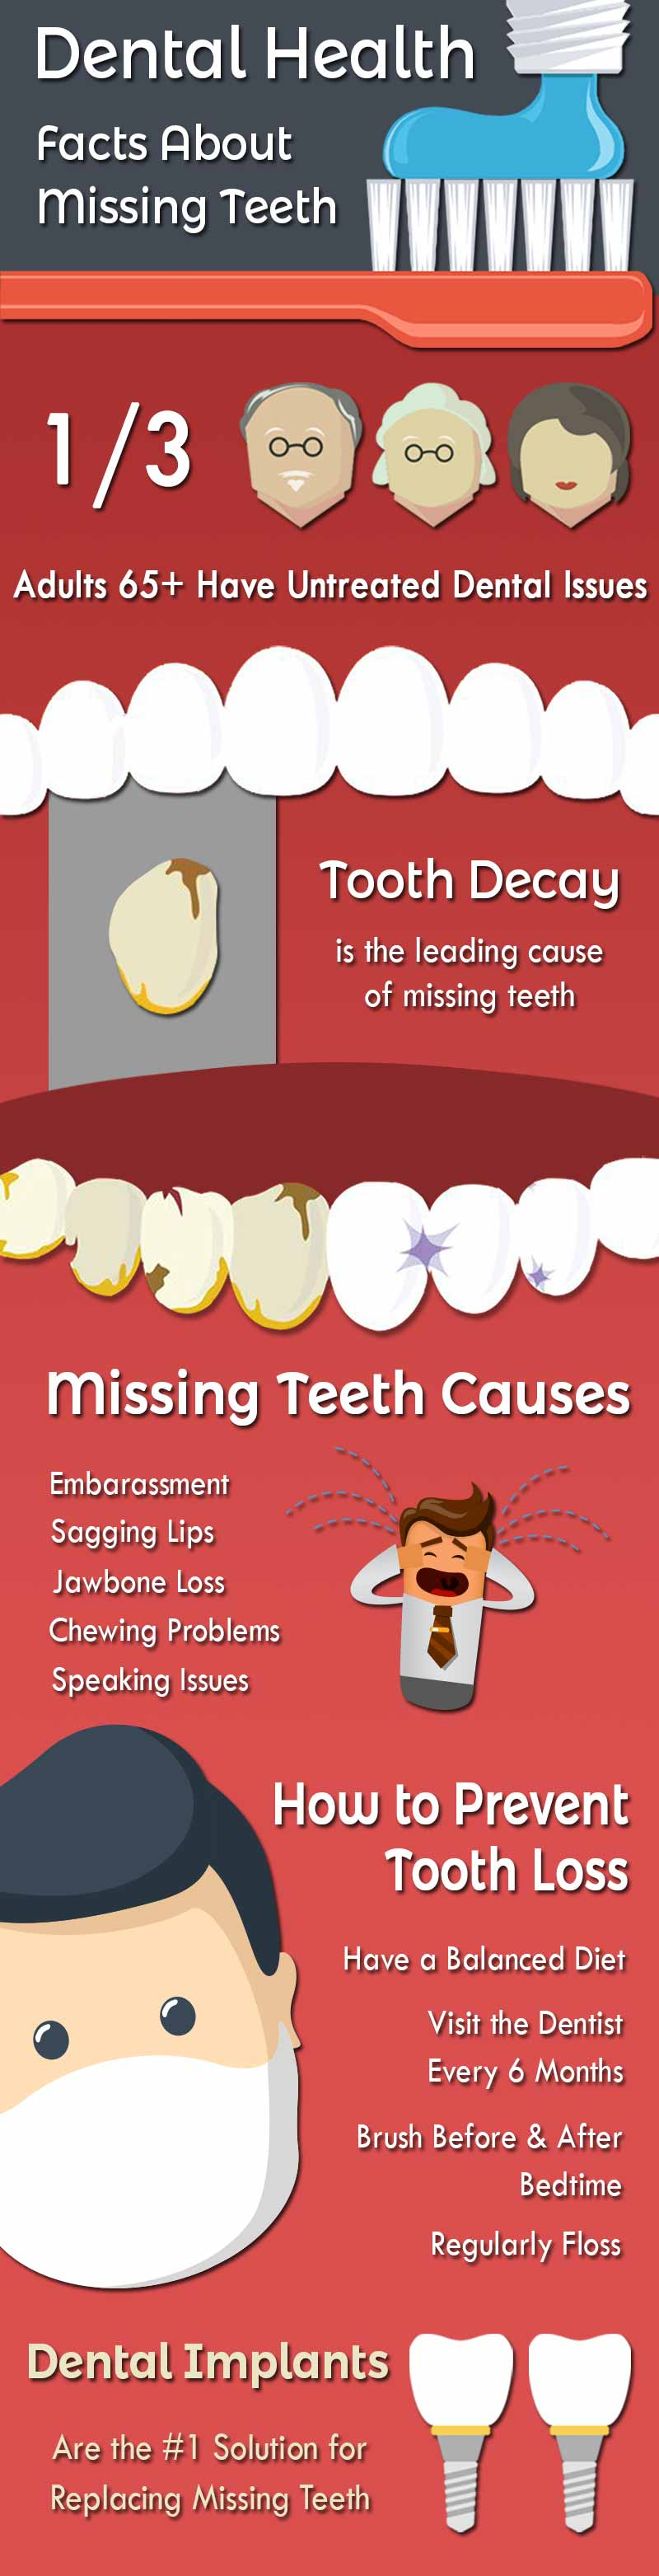 Dental Implant Infographic About Teeth